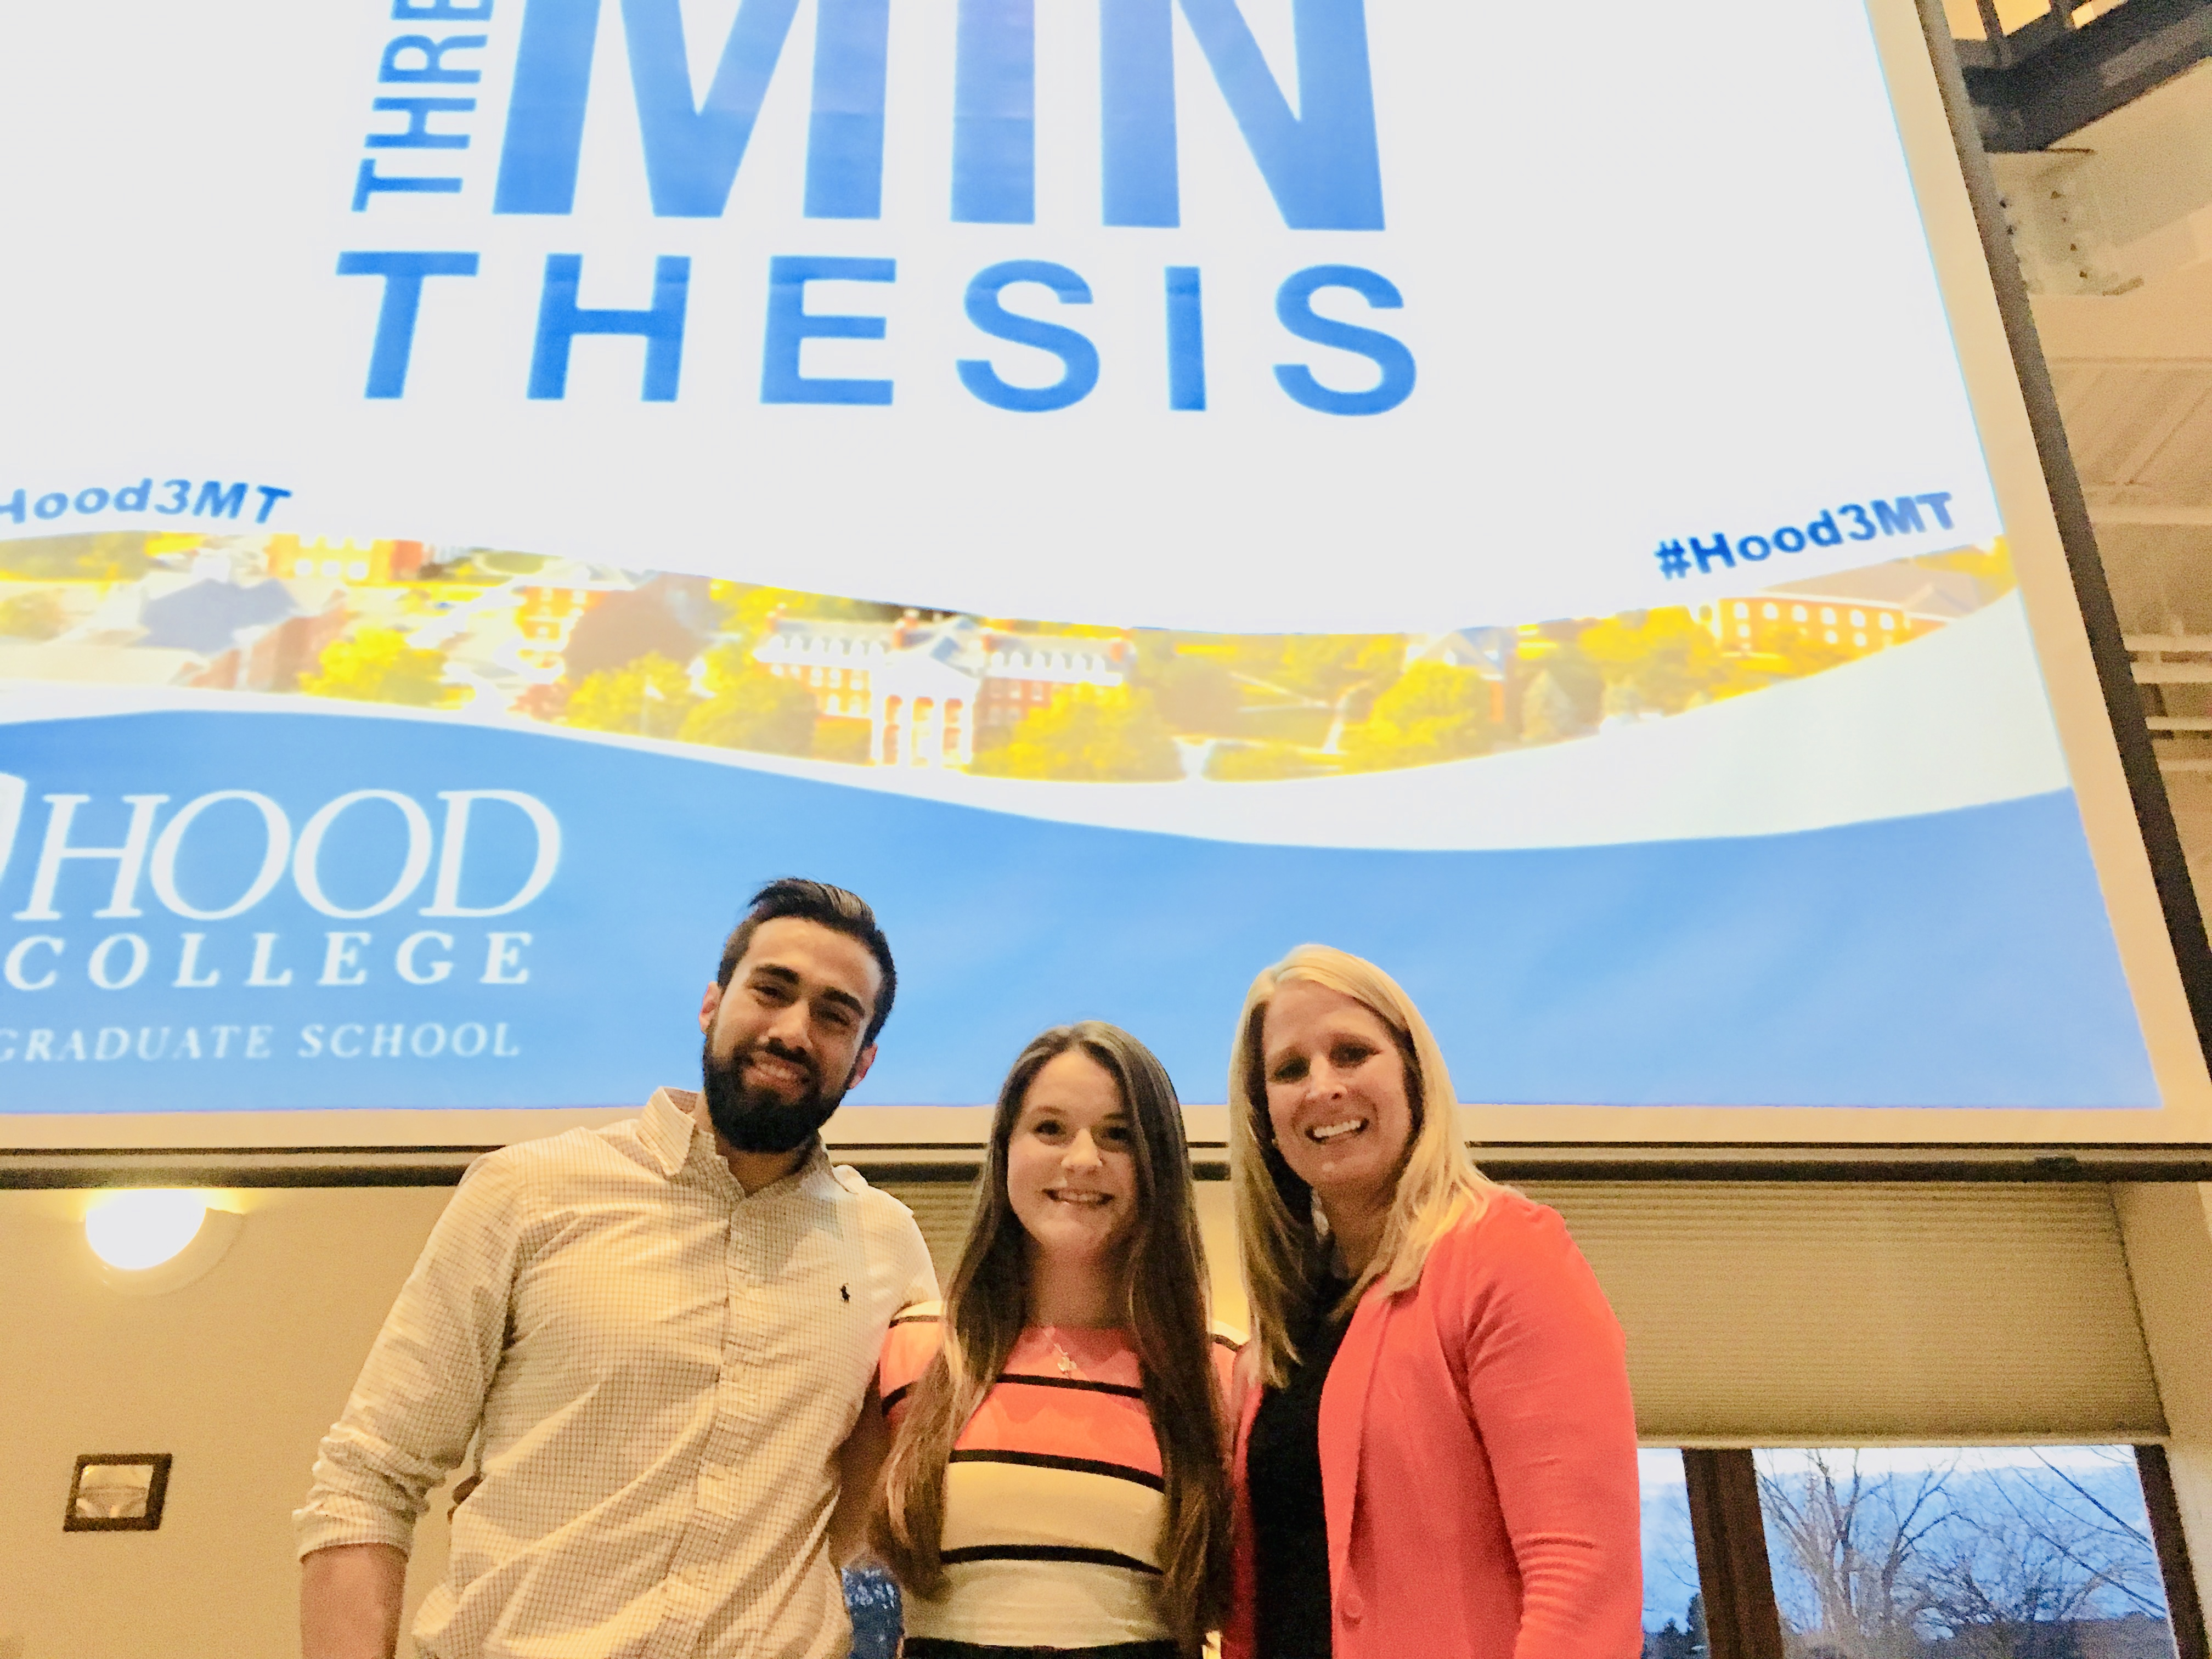 Hood College 3MT Competition Winners